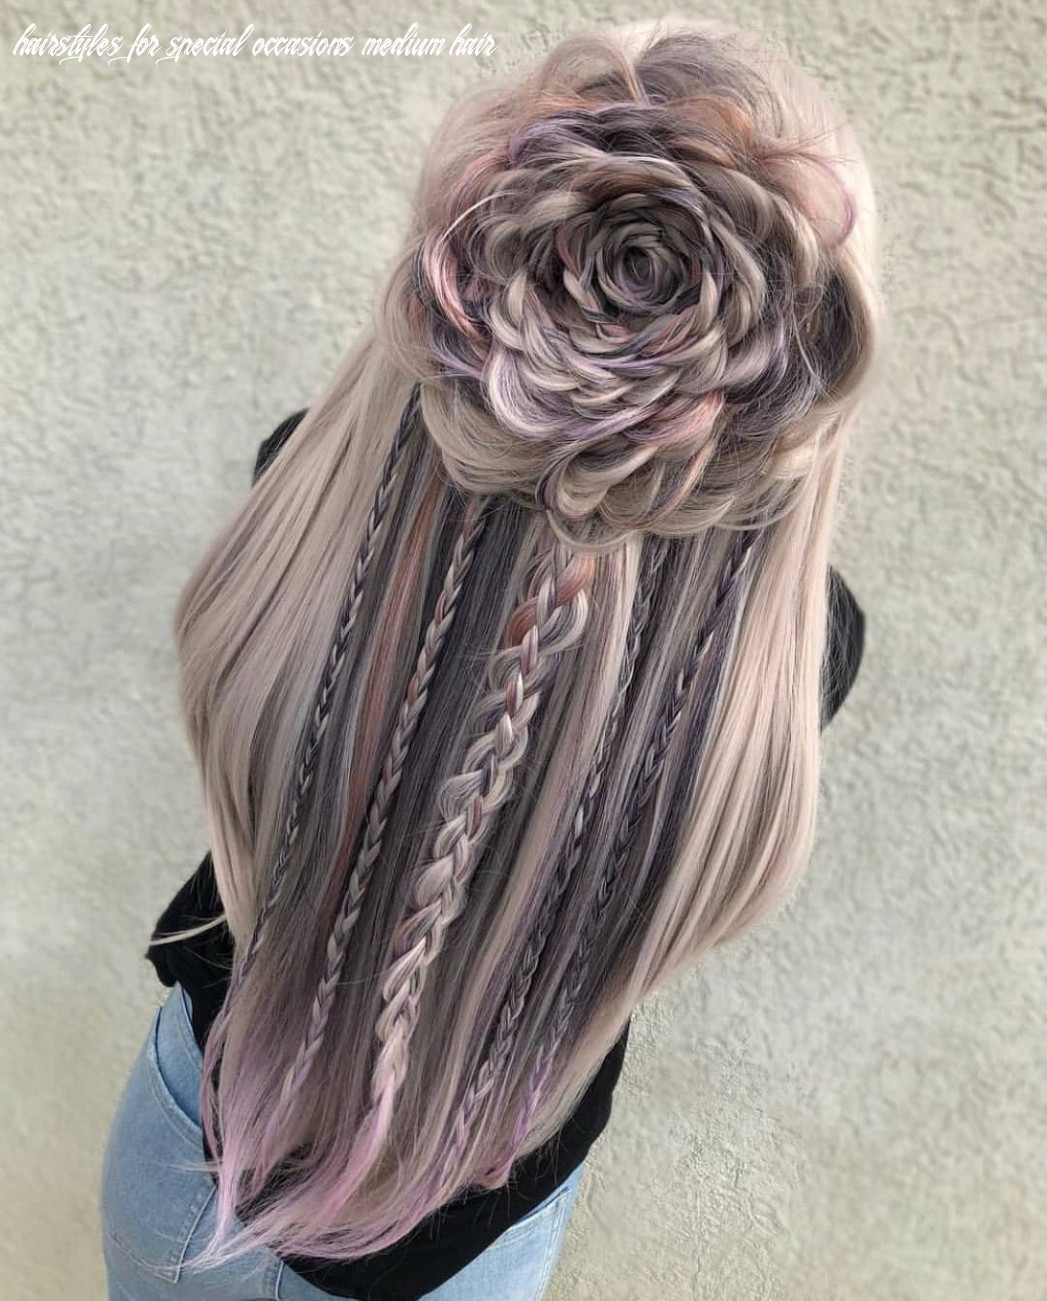 11 Amazing Braided Hairstyles for Long Hair - 11 Women Hair Styles